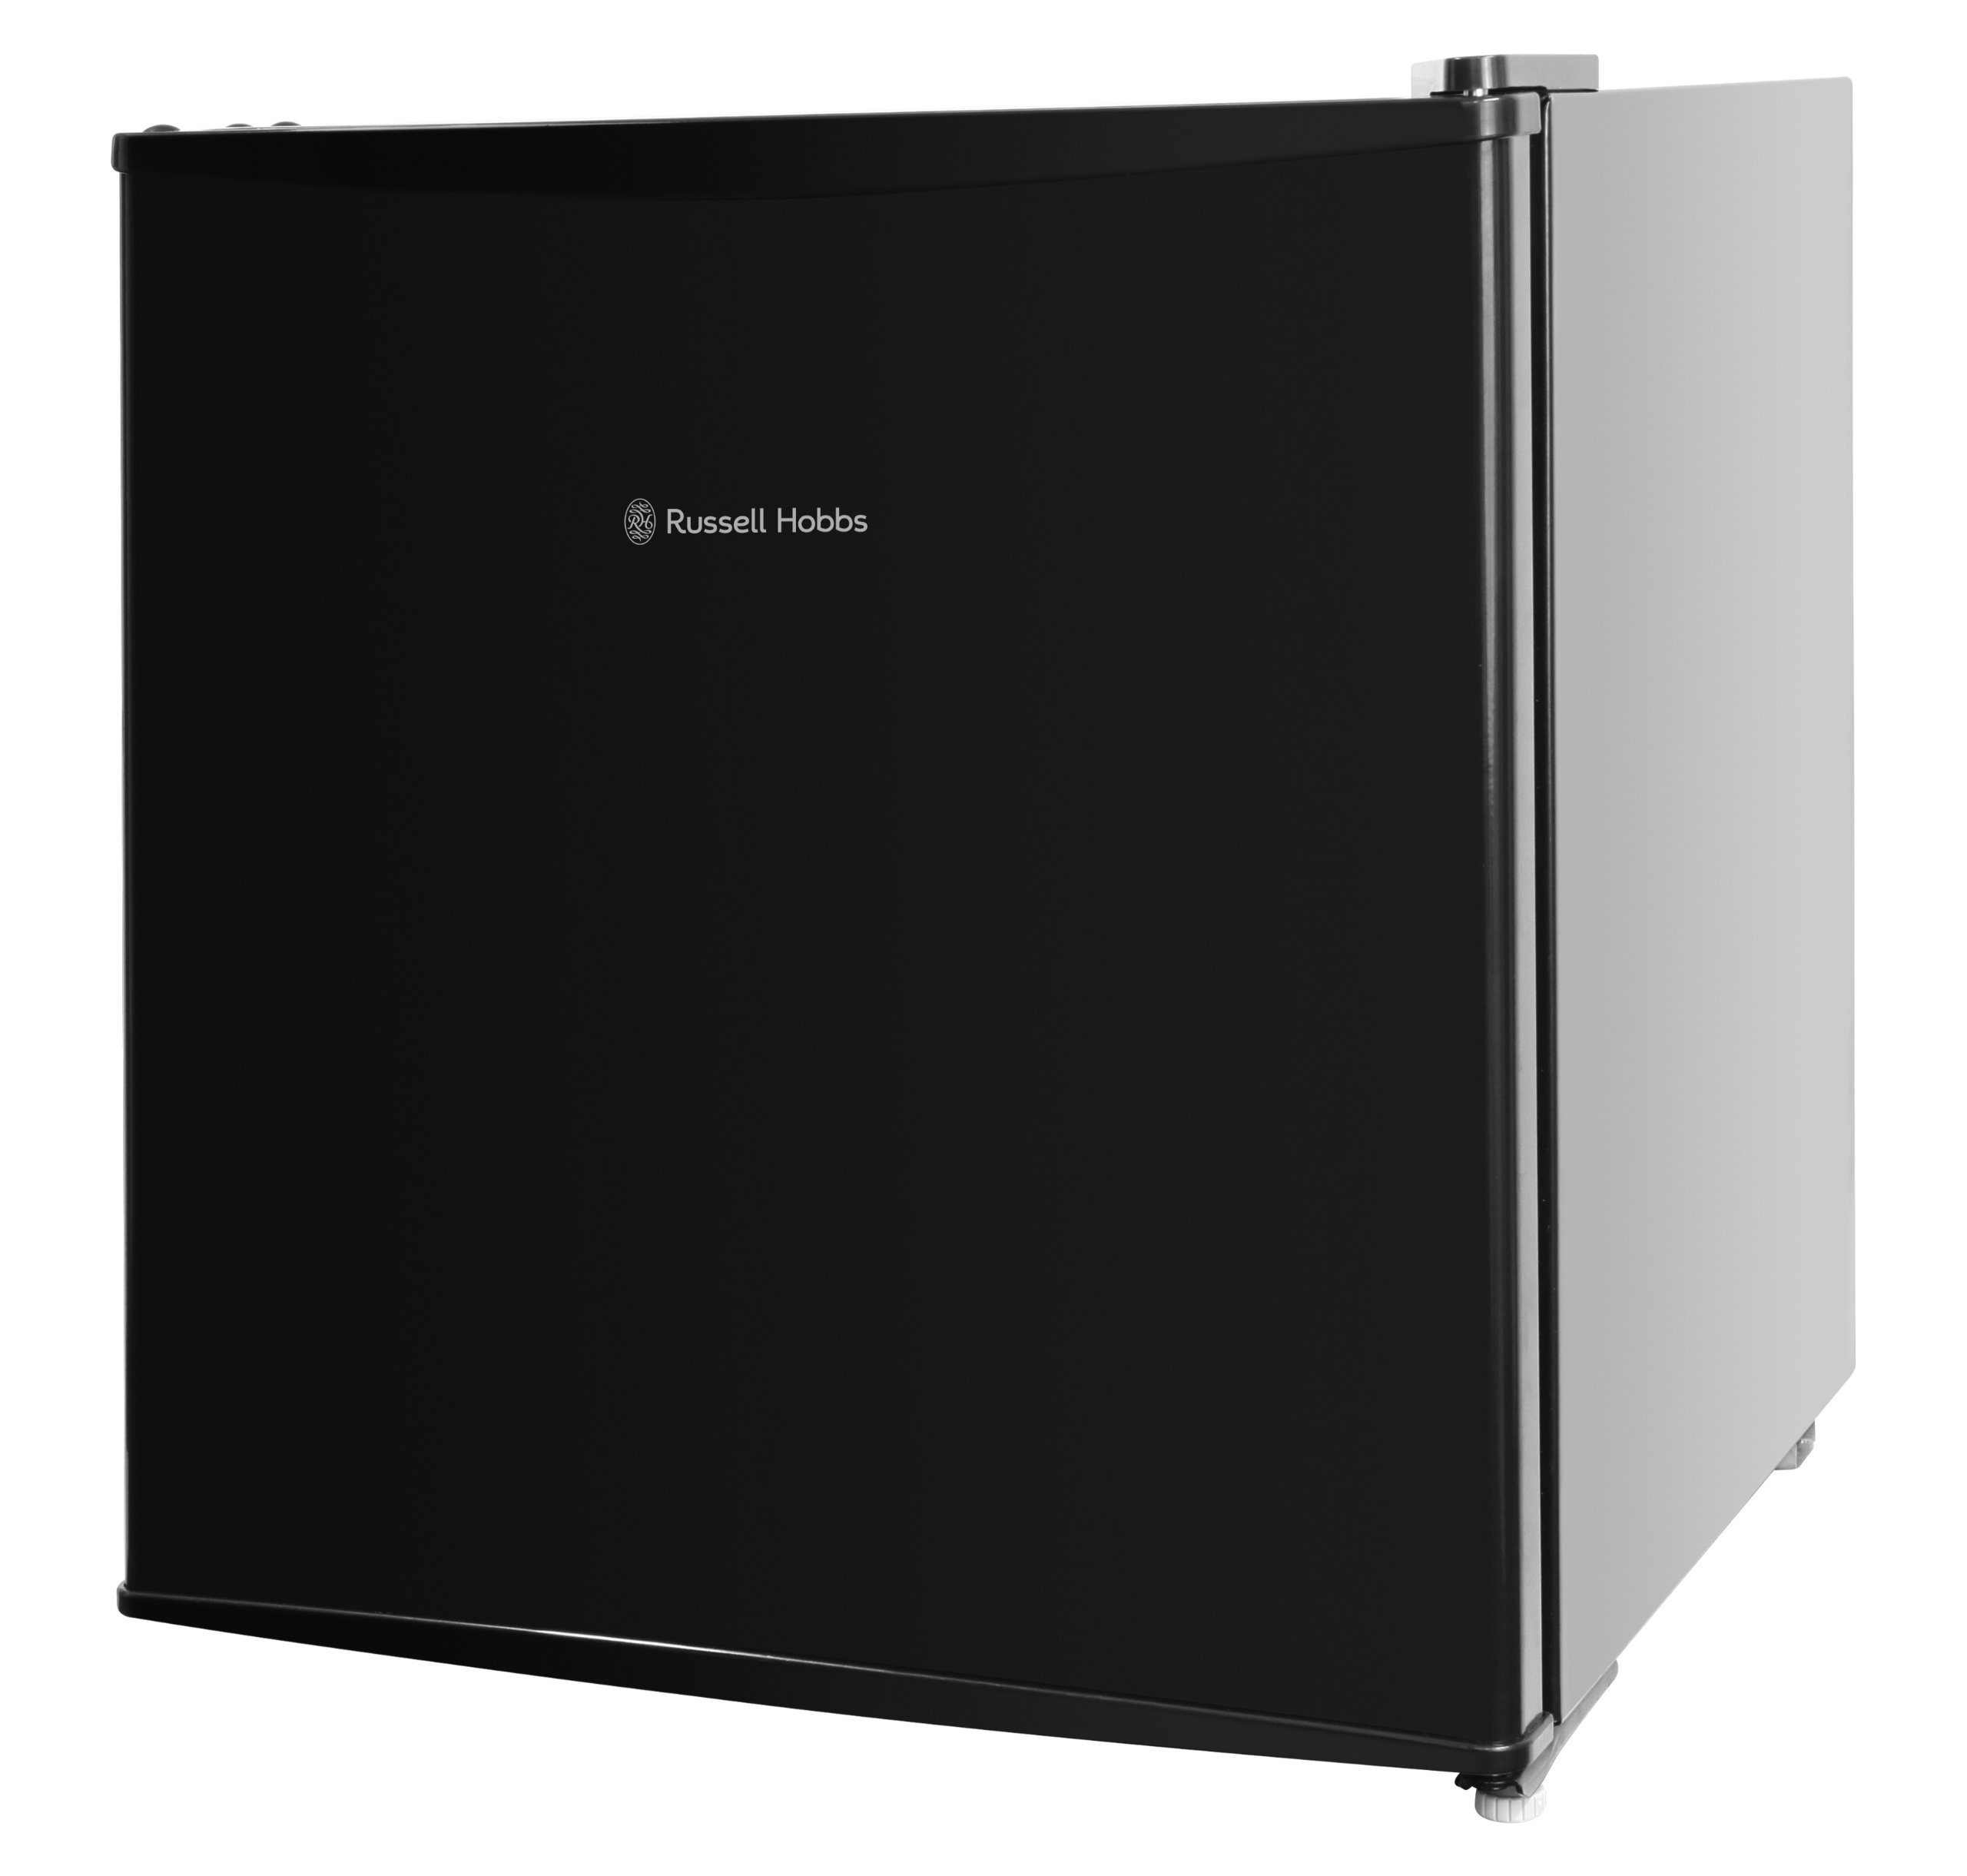 Russell hobbs rhttfz1b black table top freezer 32 litre for Table top freezer